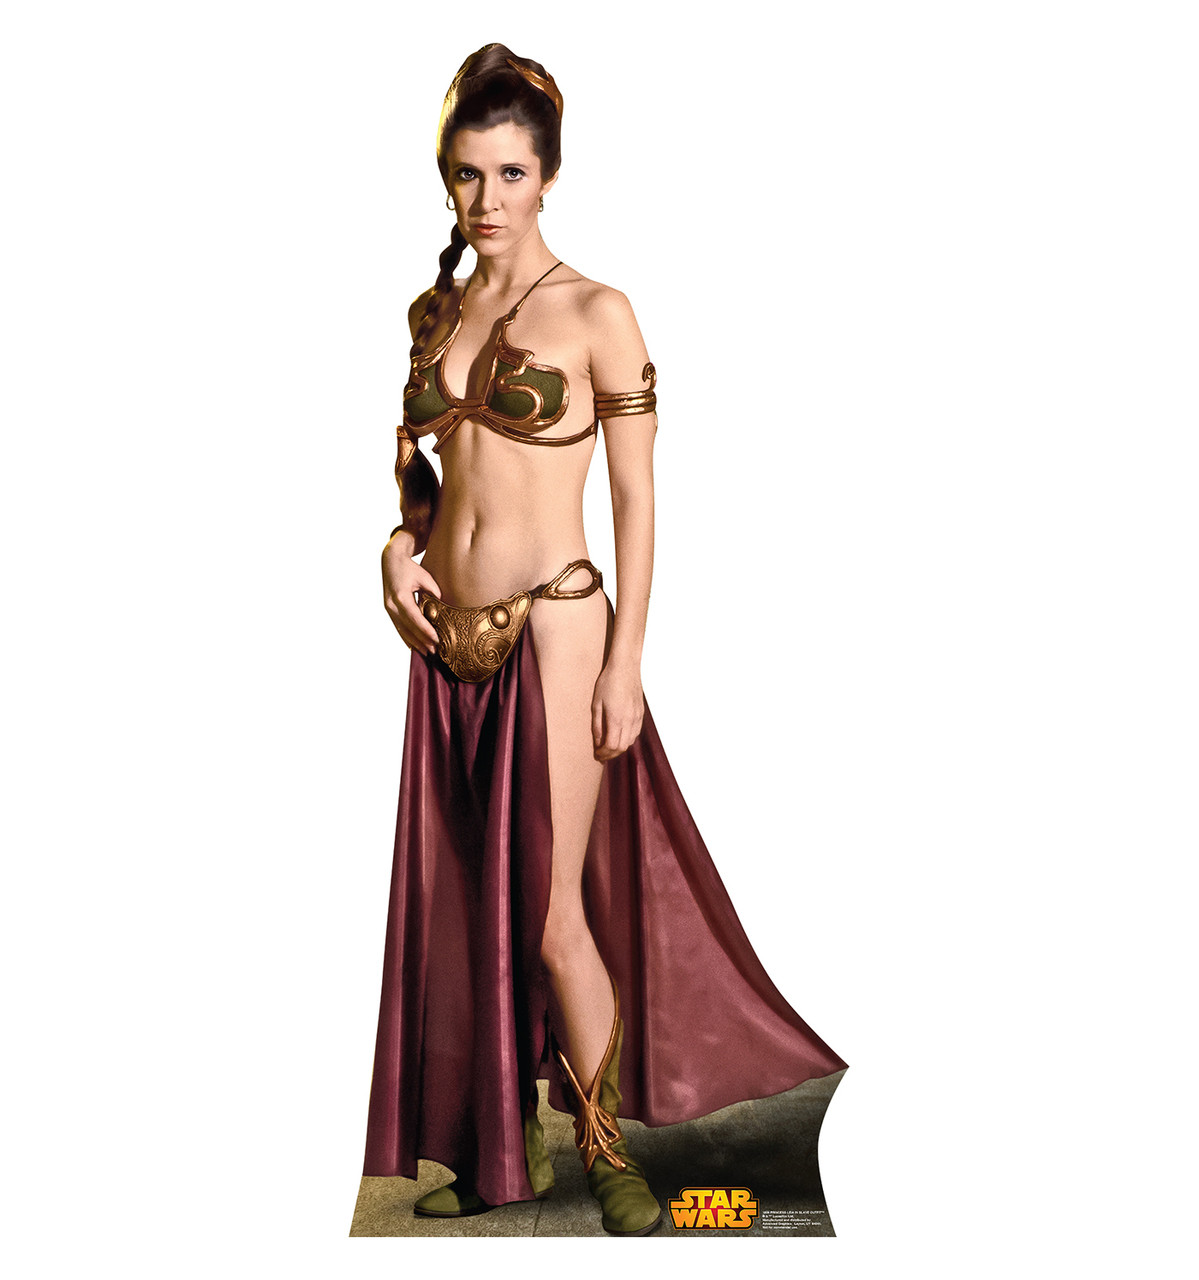 Life-size Princess Leia in Slave Outfit (Retouched) Cardboard Standup | Cardboard Cutout